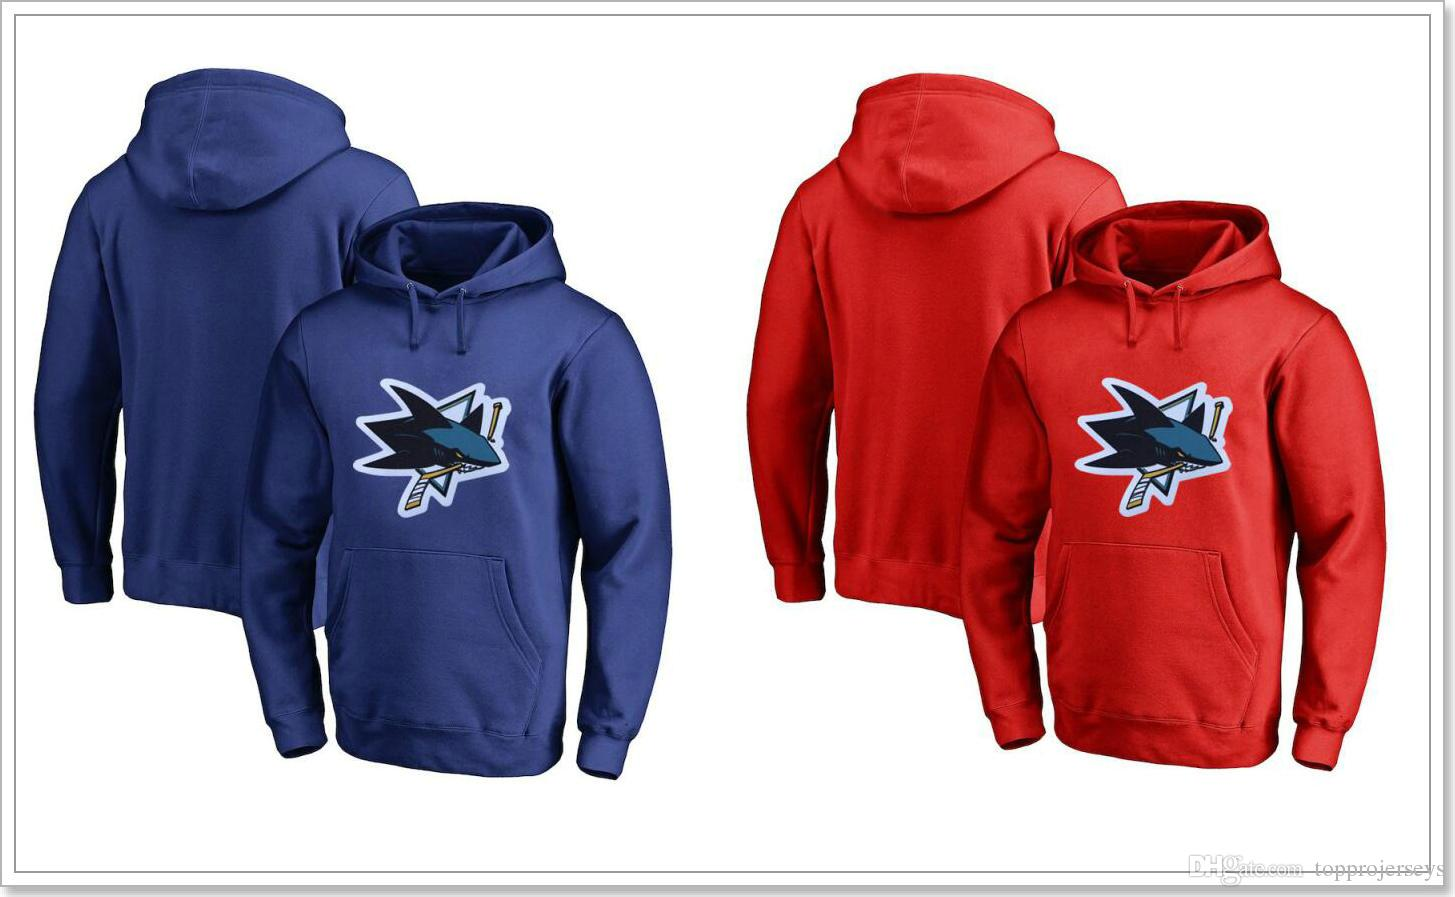 2019 2018 19 San Jose Sharks Mens Vintage Ice Hockey Shirts Sweaters  Uniforms Hoodies Stitched Embroidery Blank Cheap Sports Jerseys On Sale  From ... 081245c57